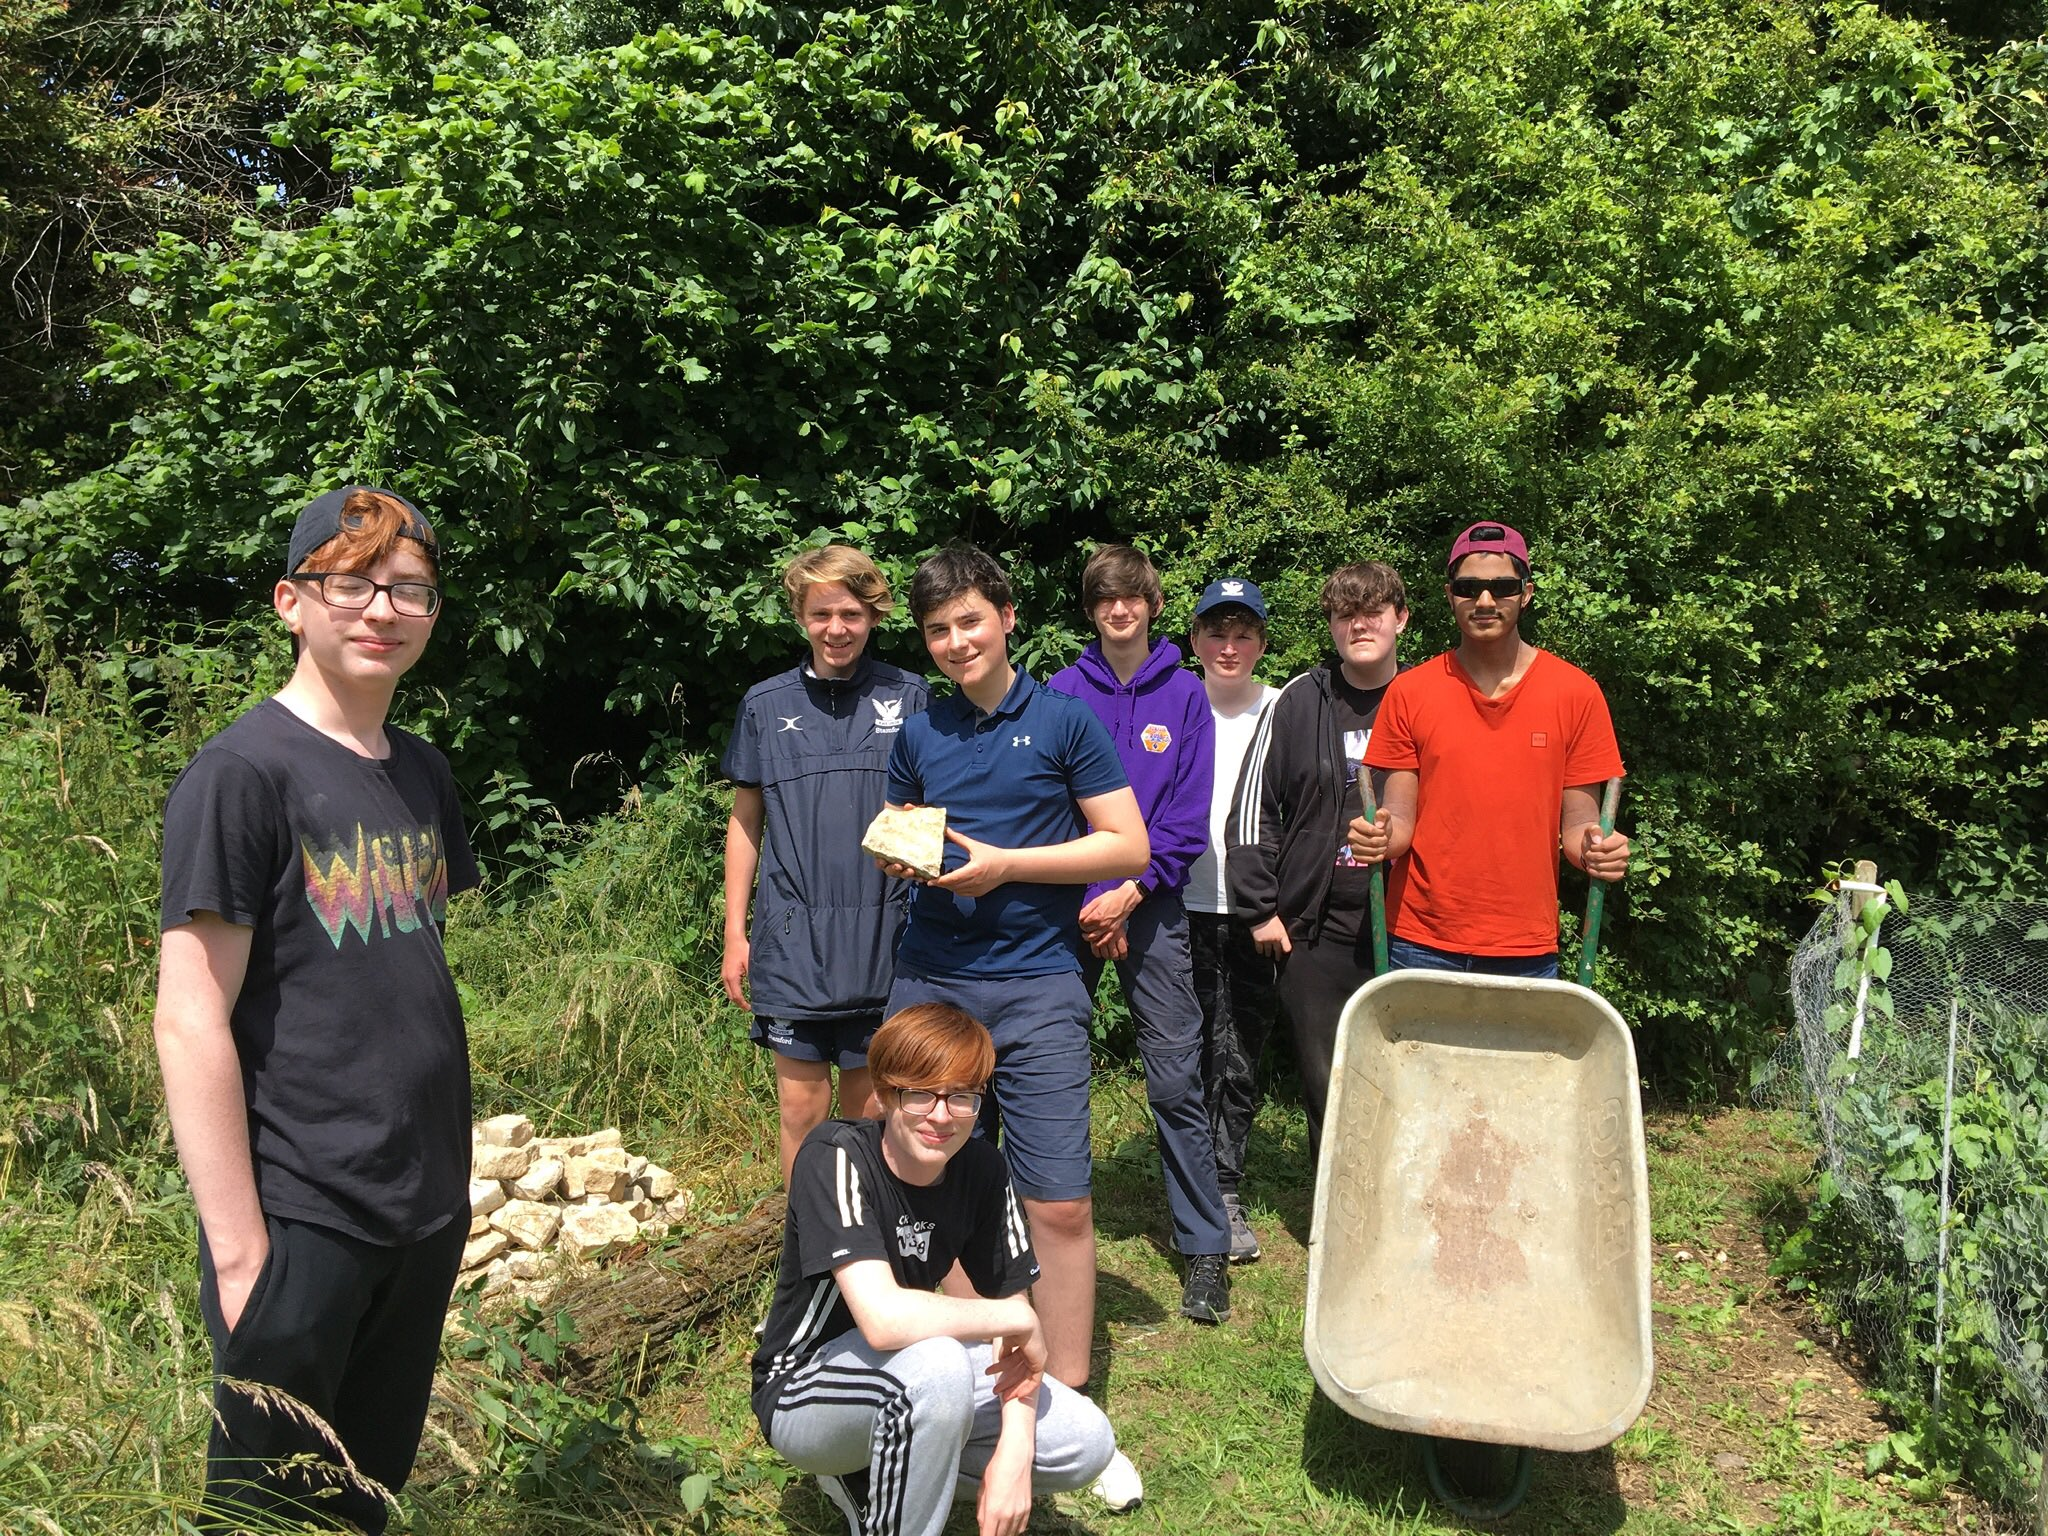 Volunteering at the Countryside Trust